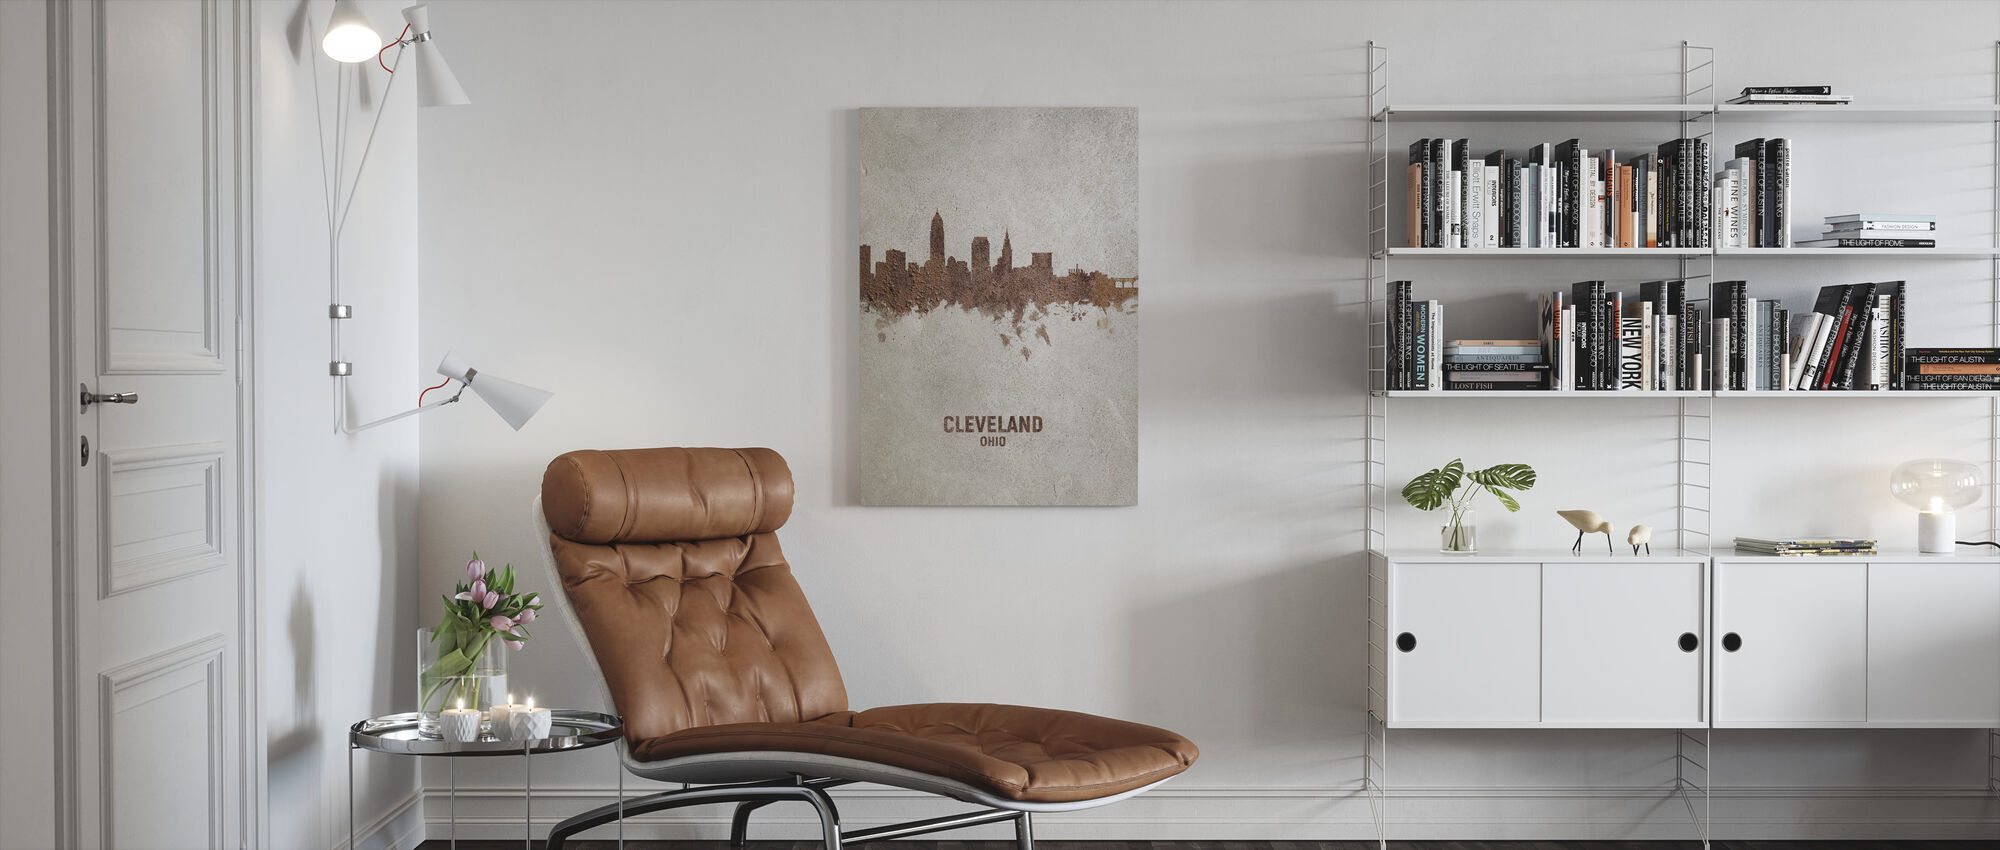 Cleveland Ohio Roest Skyline - Canvas print - Woonkamer